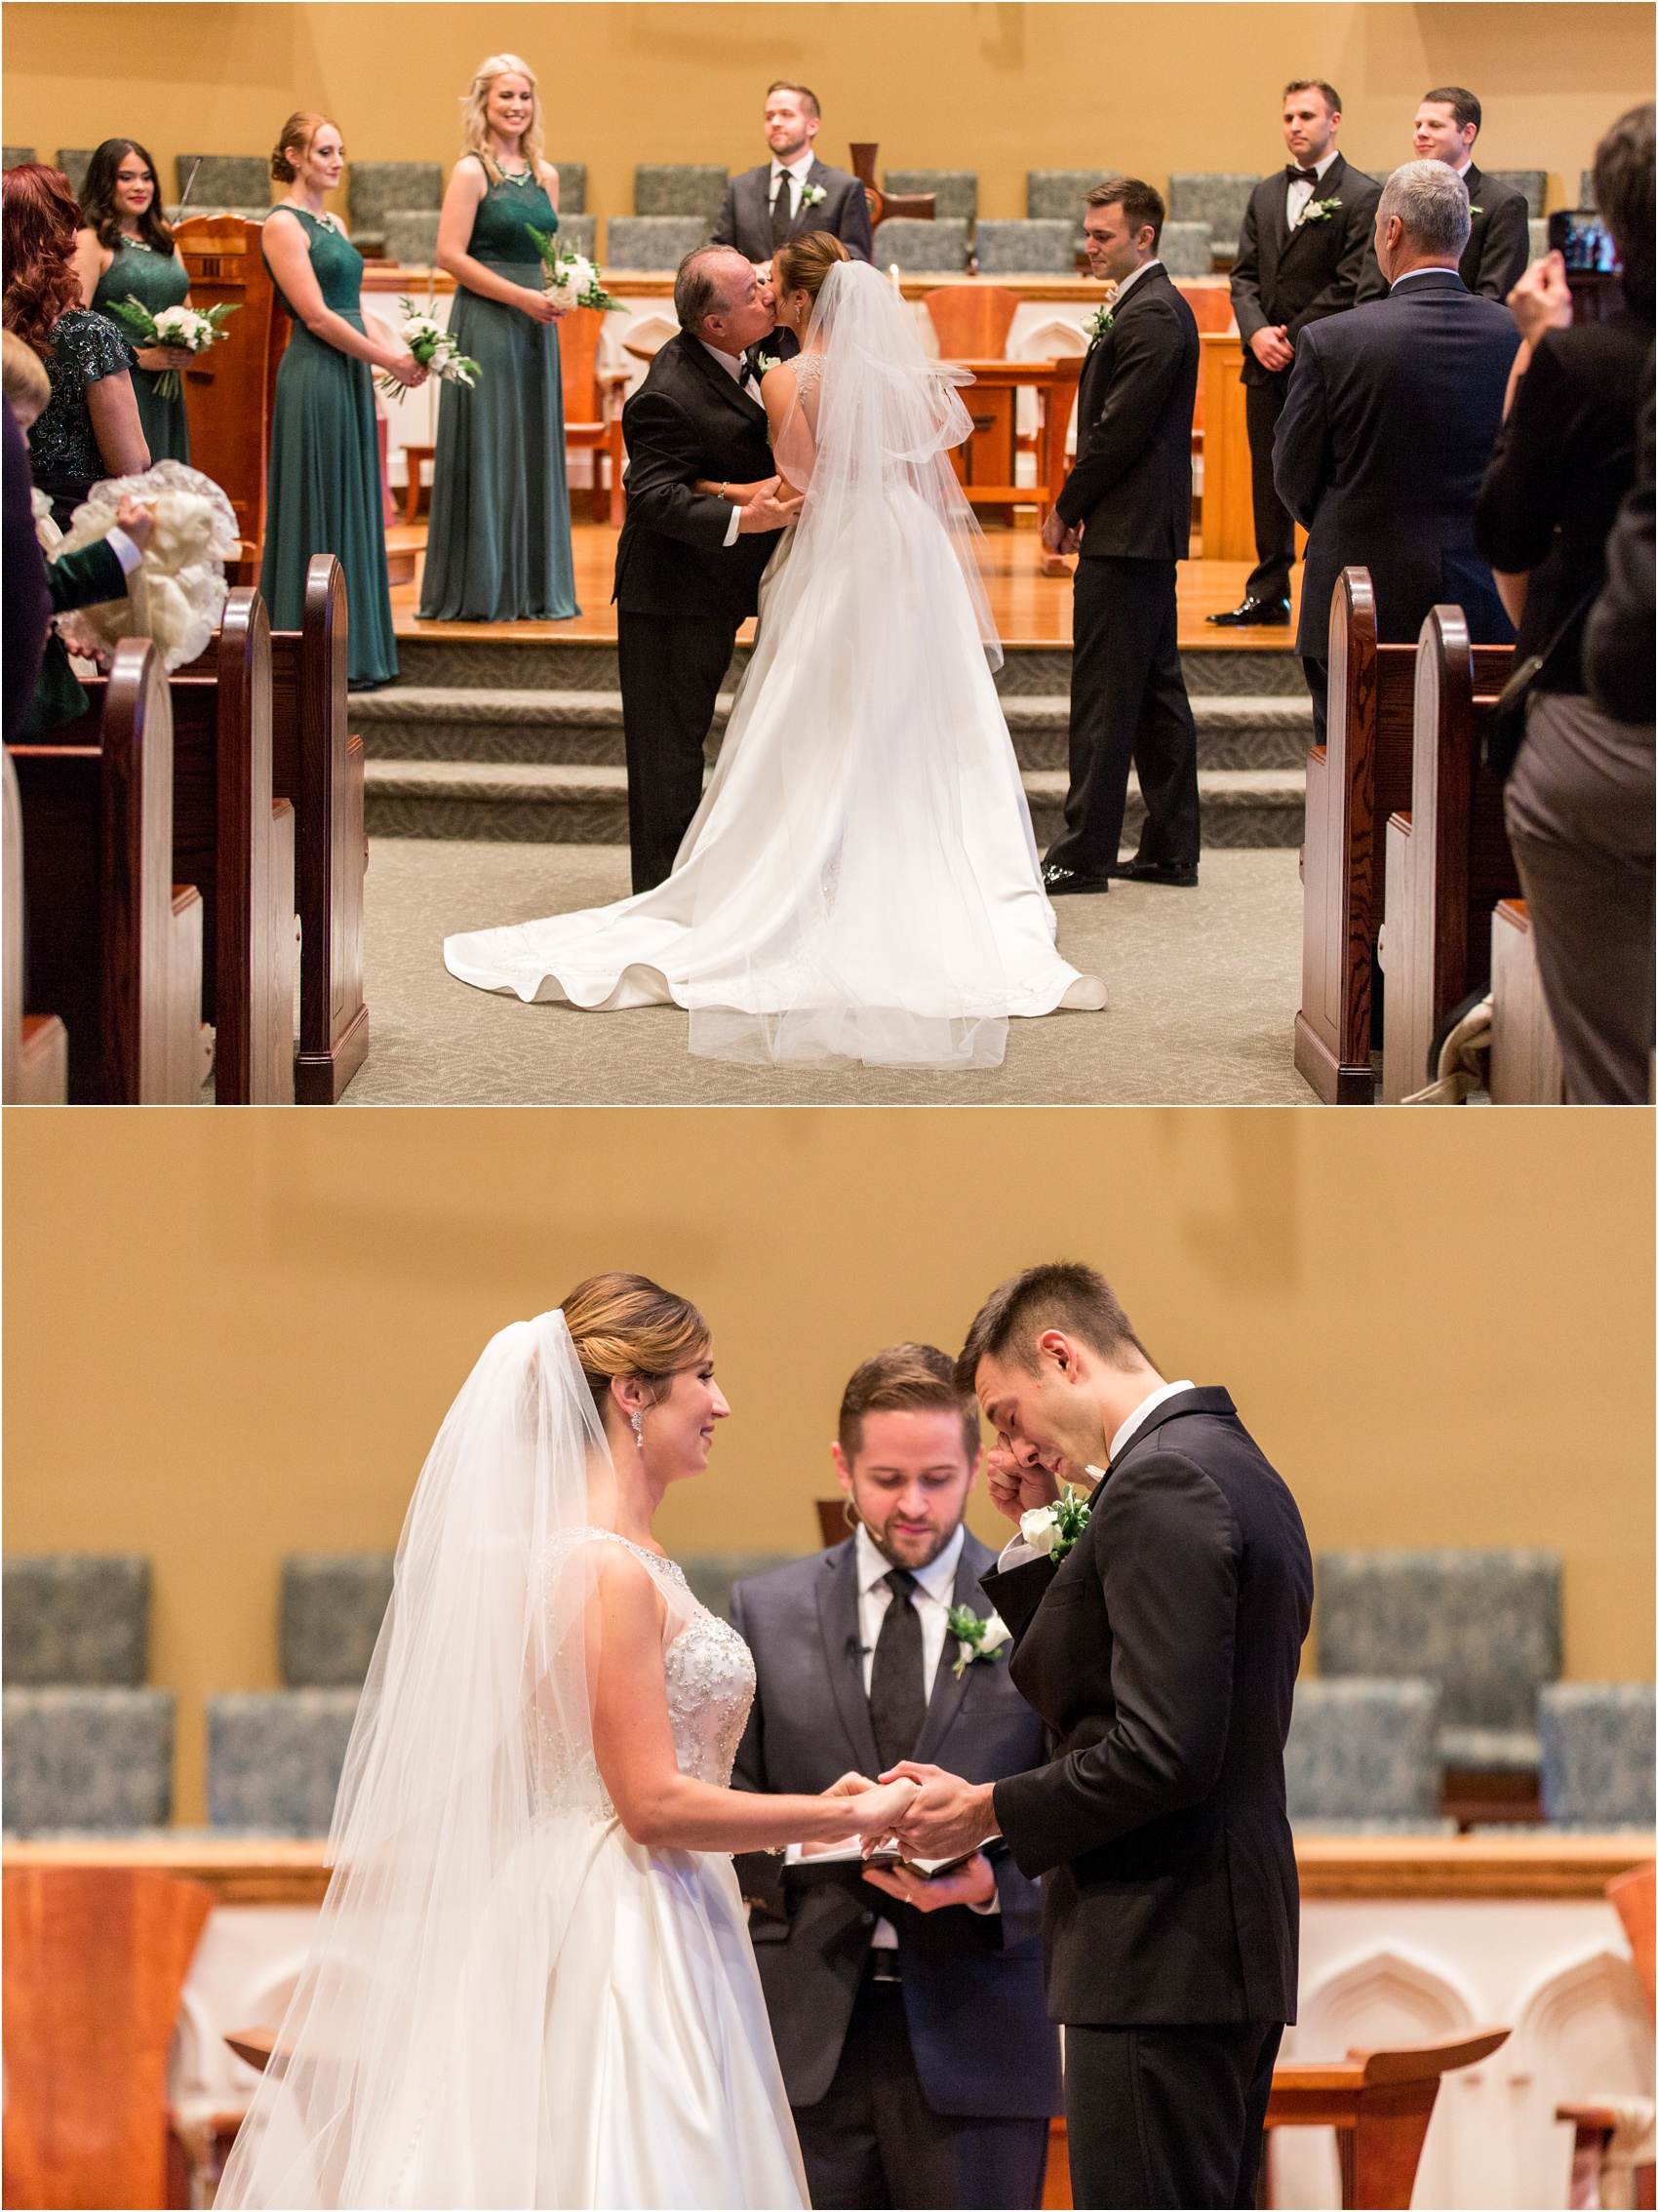 Savannah Eve Photography- Bottiglion-Scope Wedding- Sneak Peek-18.jpg